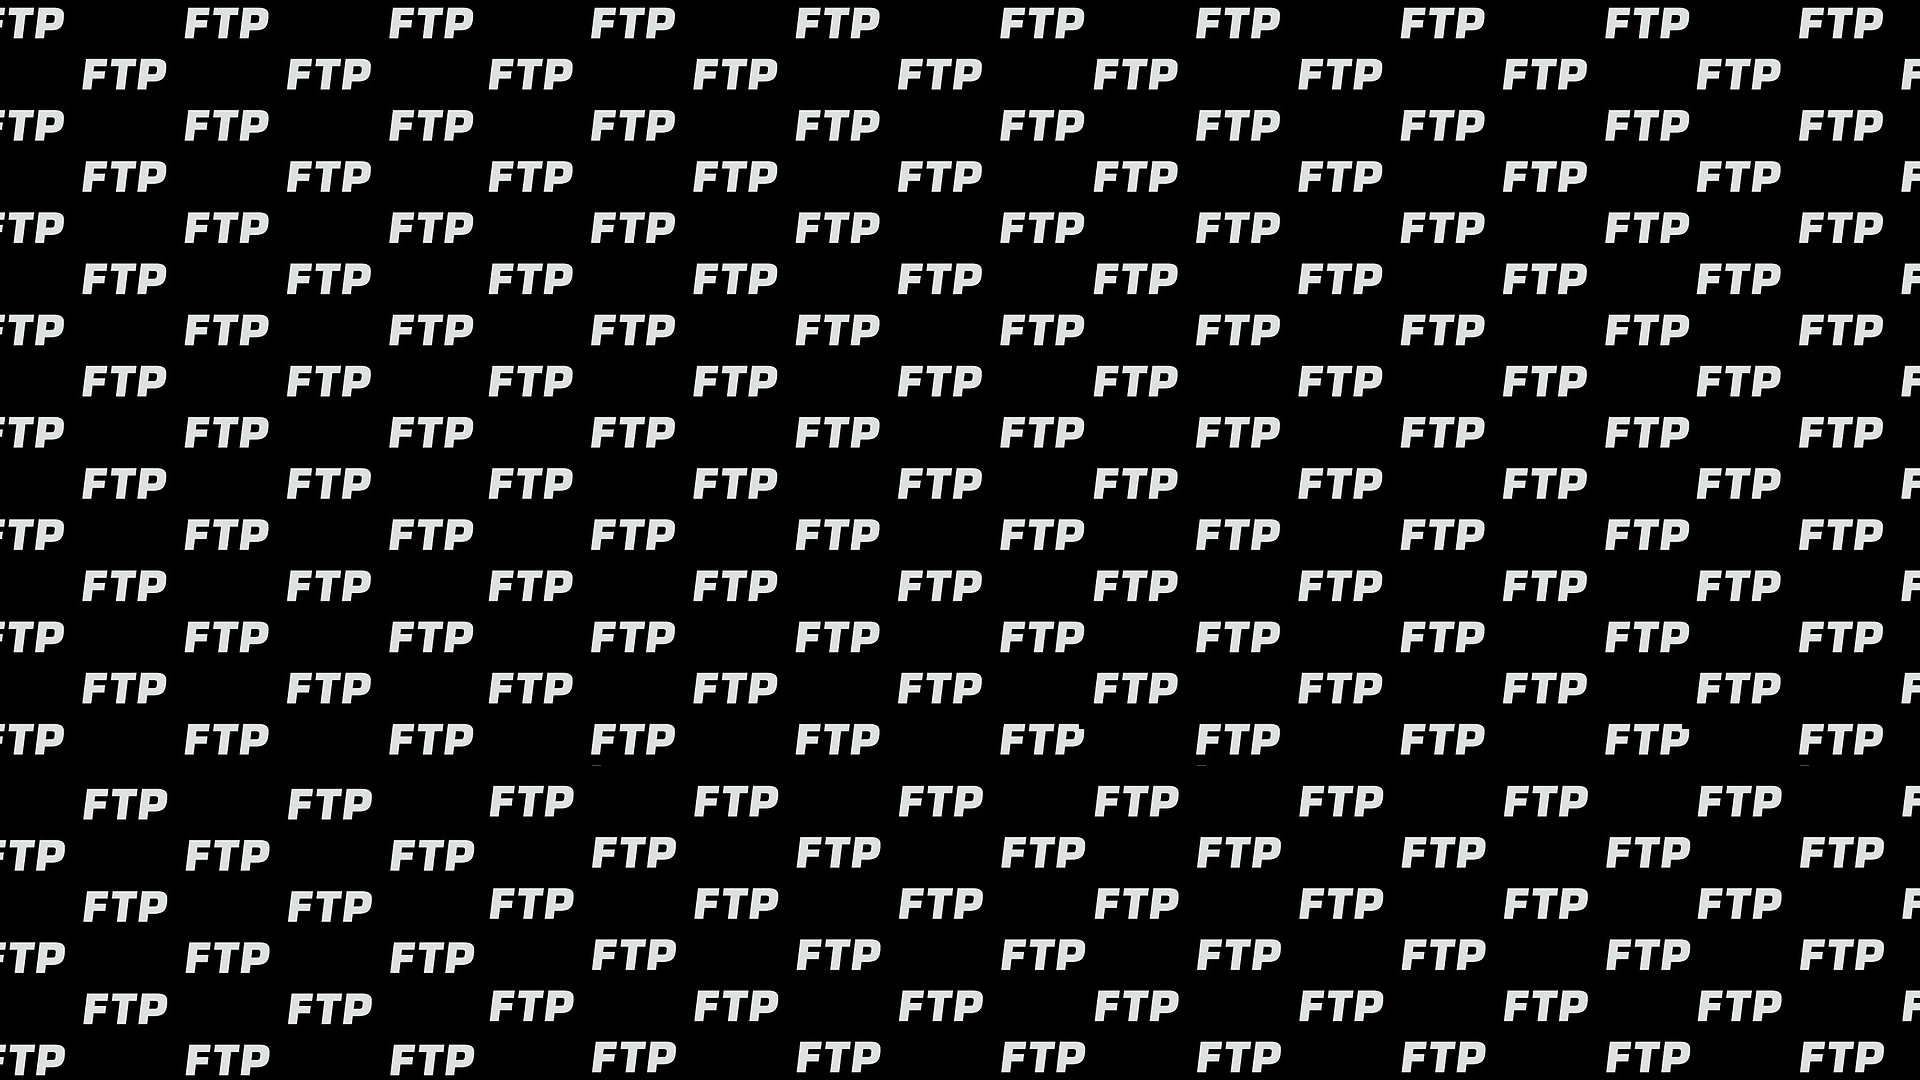 How to Choose the Right FTP Wallpaper